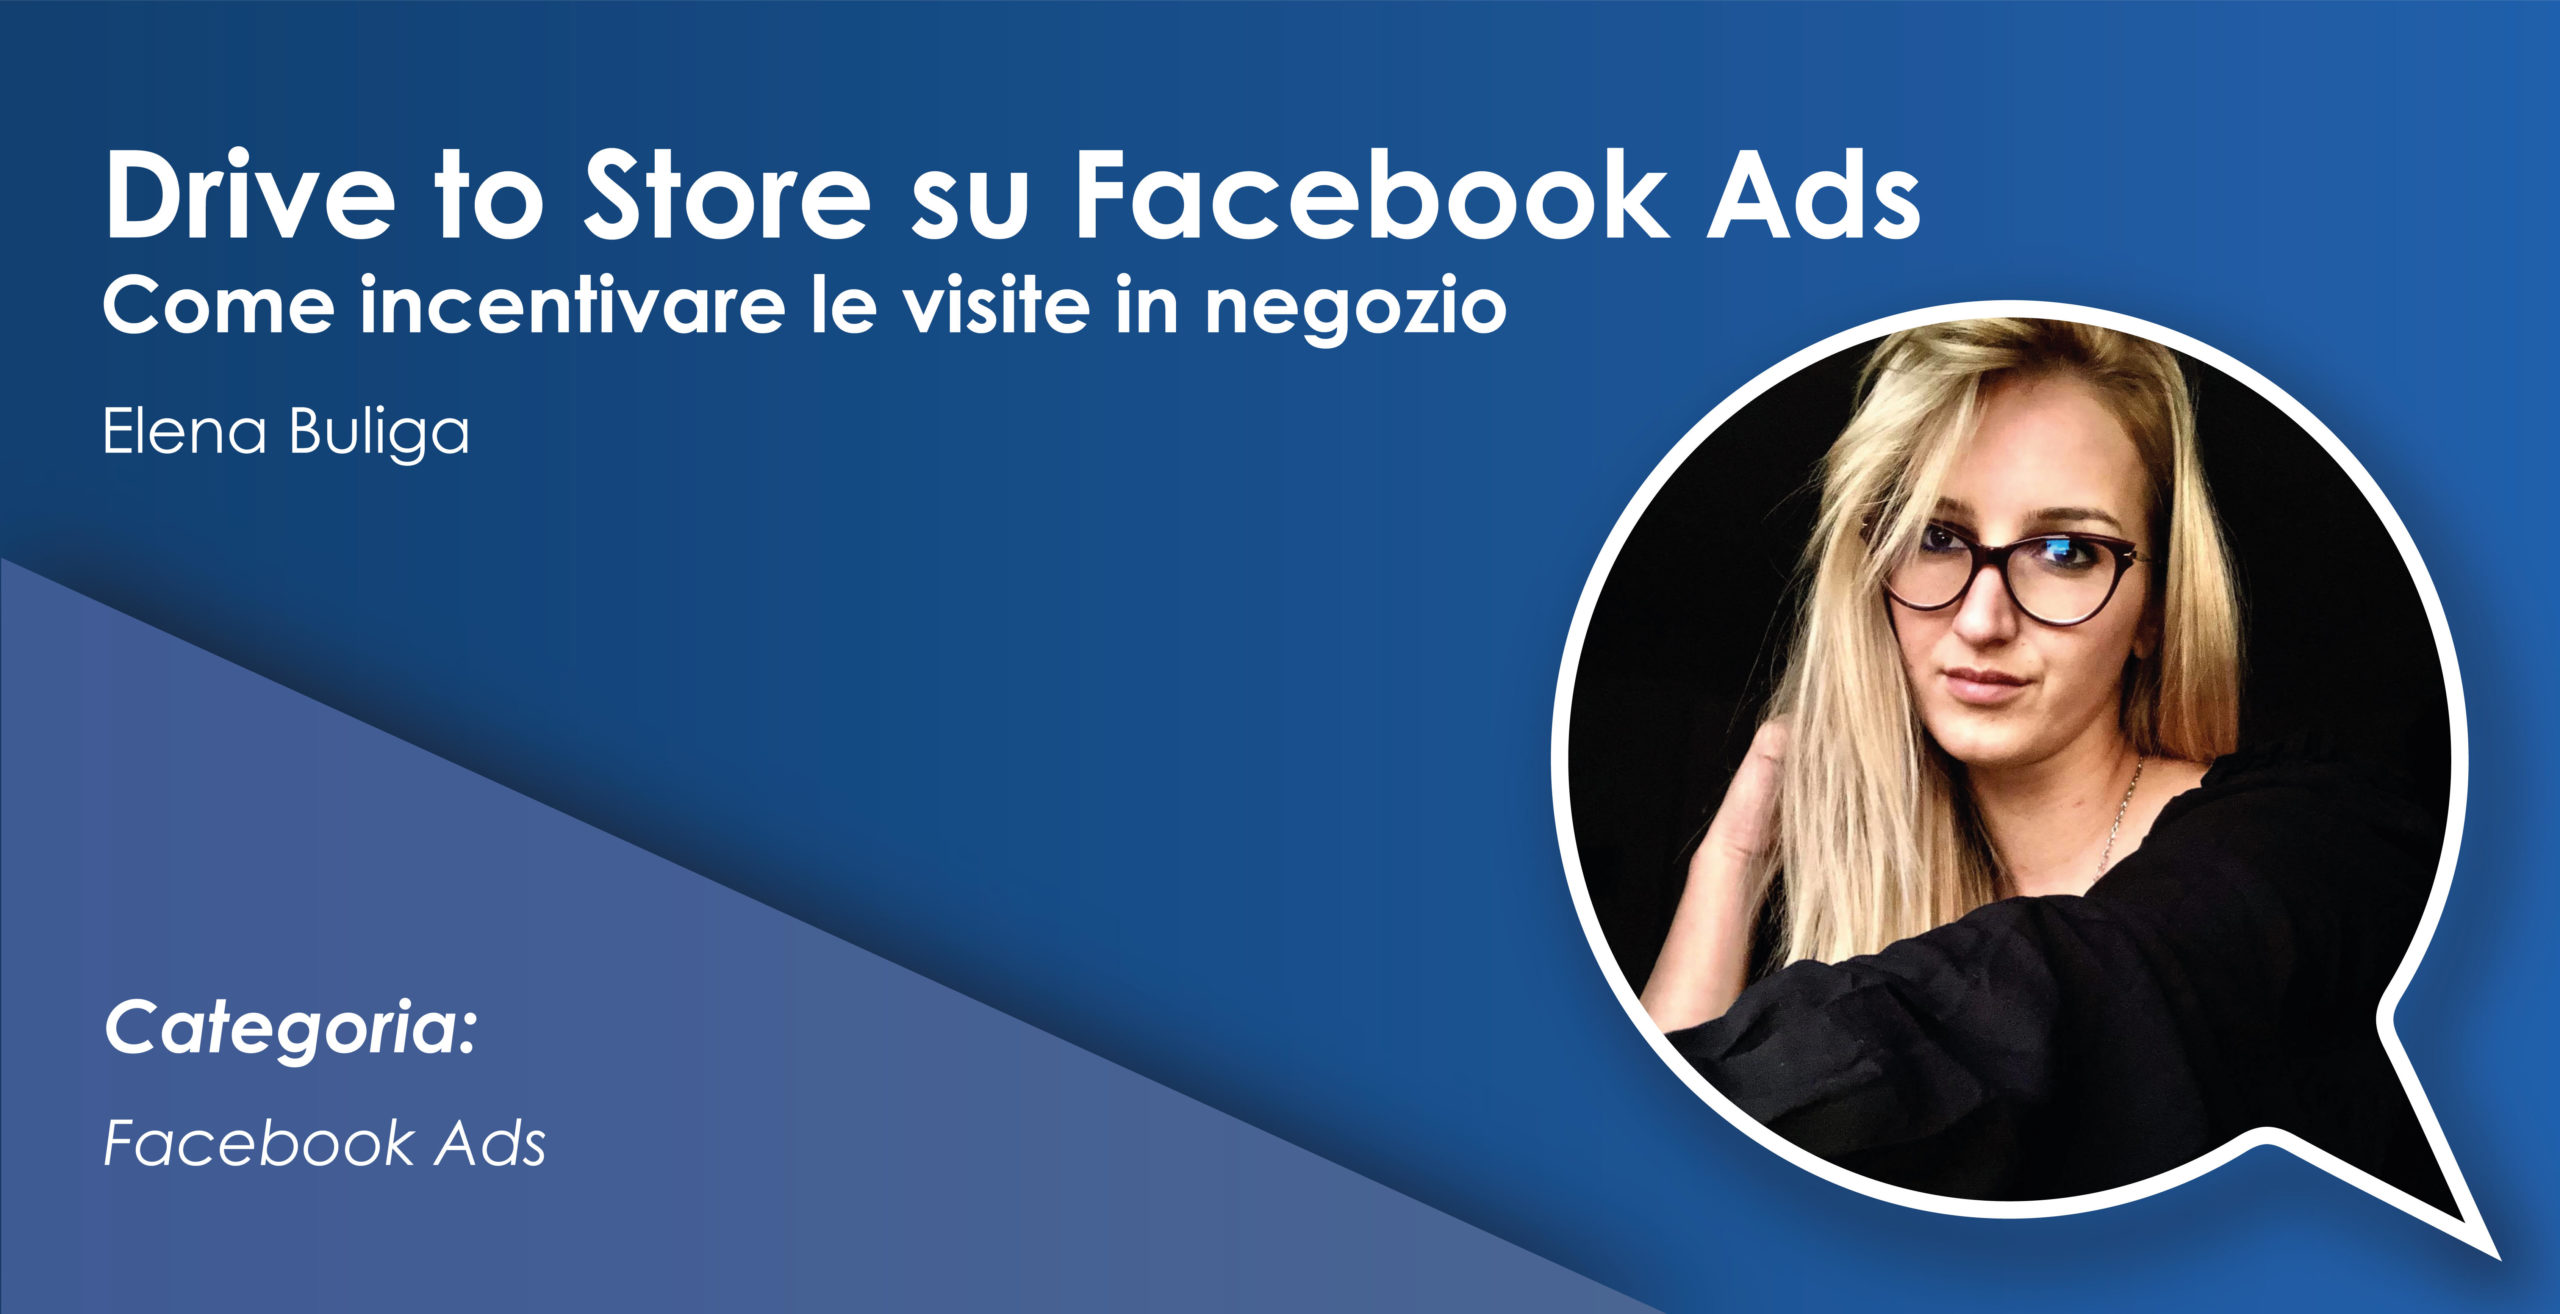 Drive to Store su Facebook Ads